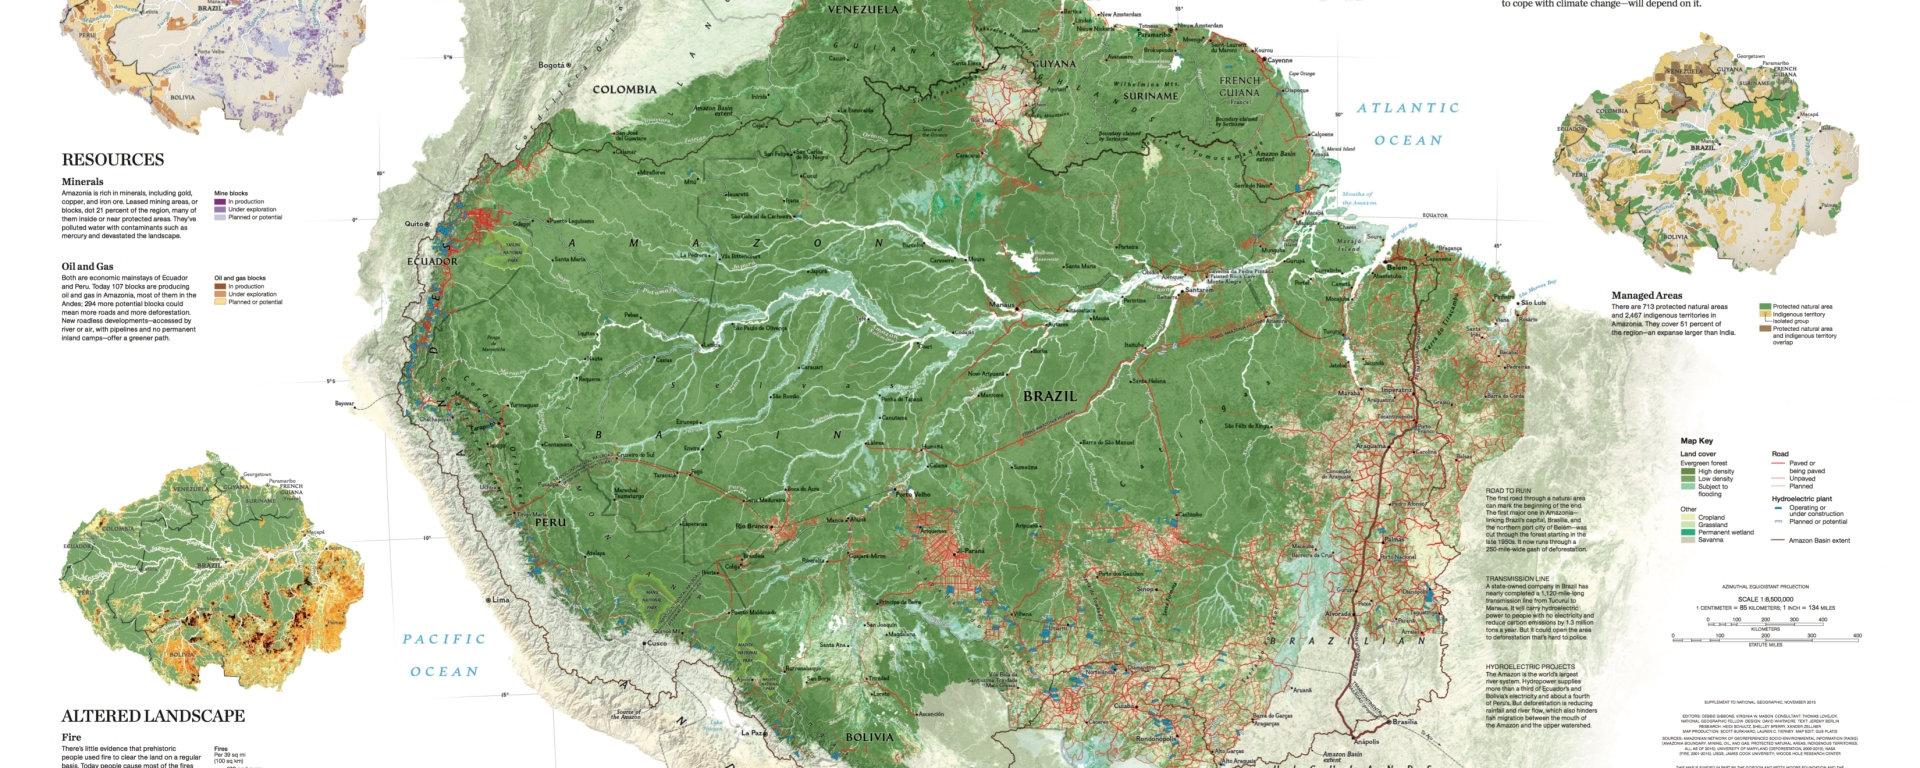 Amazon Forest Map The Amazon Rain Forest Is Not an Untamed Jungle – National